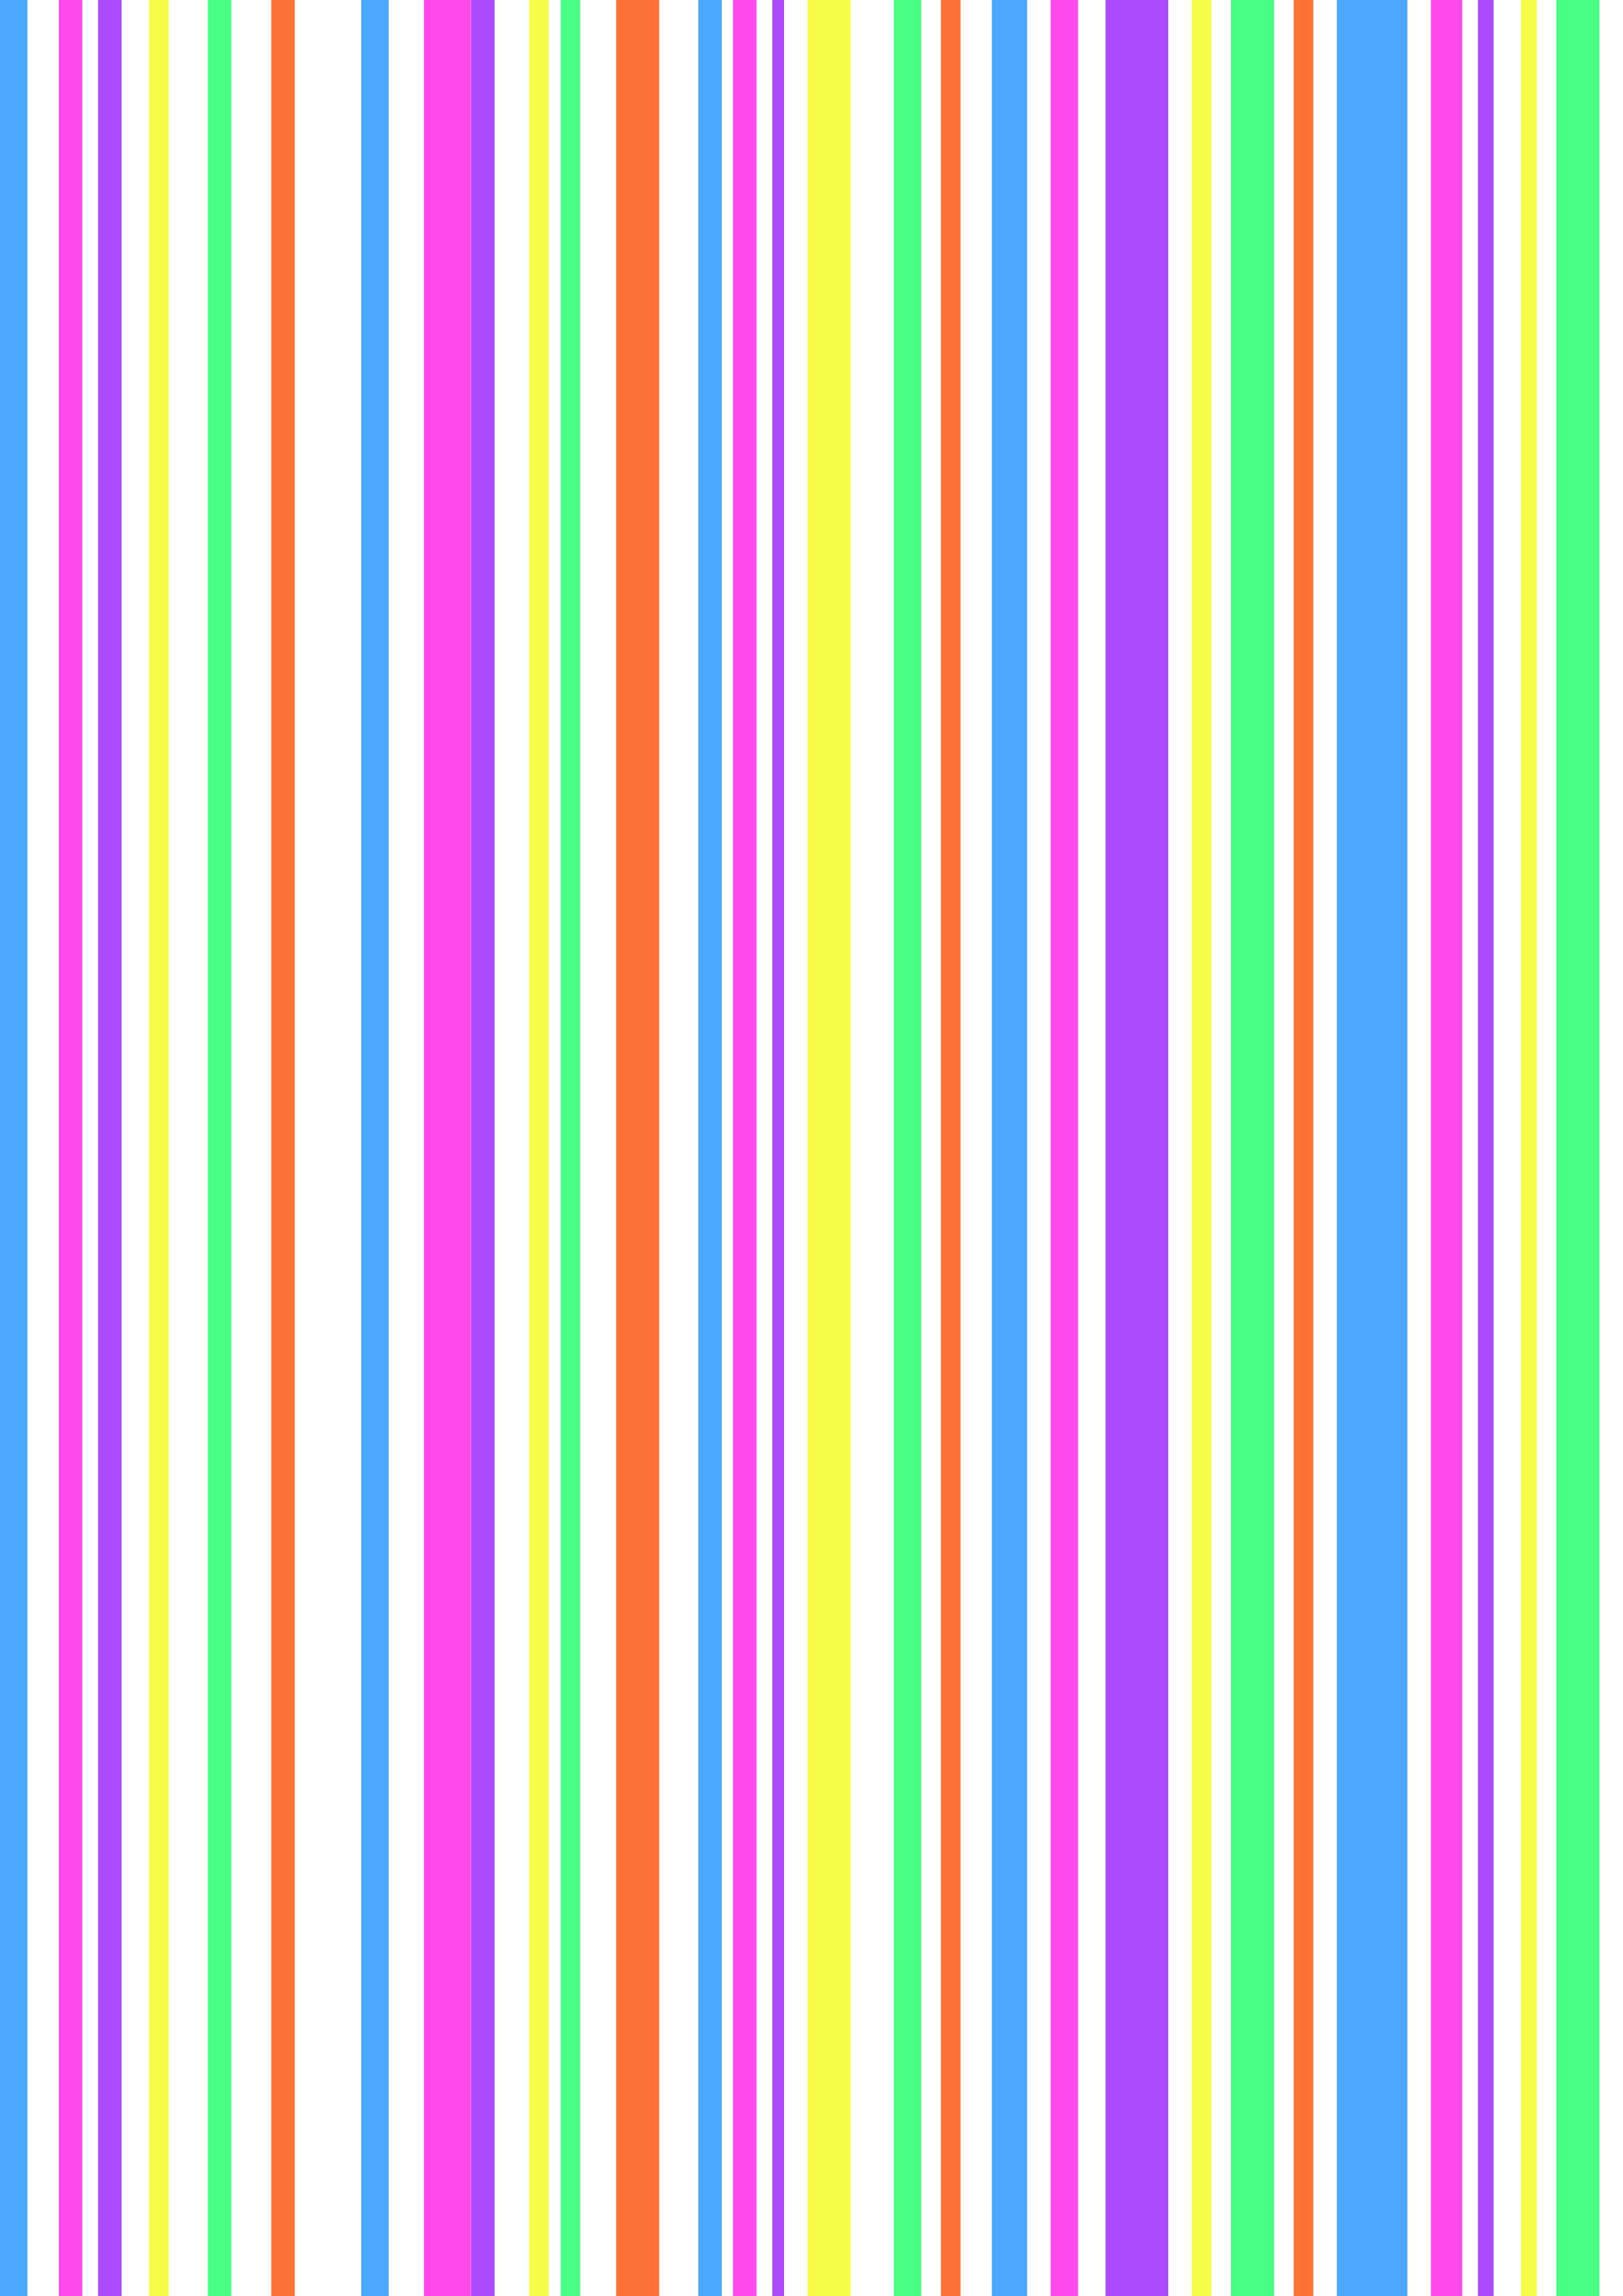 awesome vertical lines wallpaper - photo #40